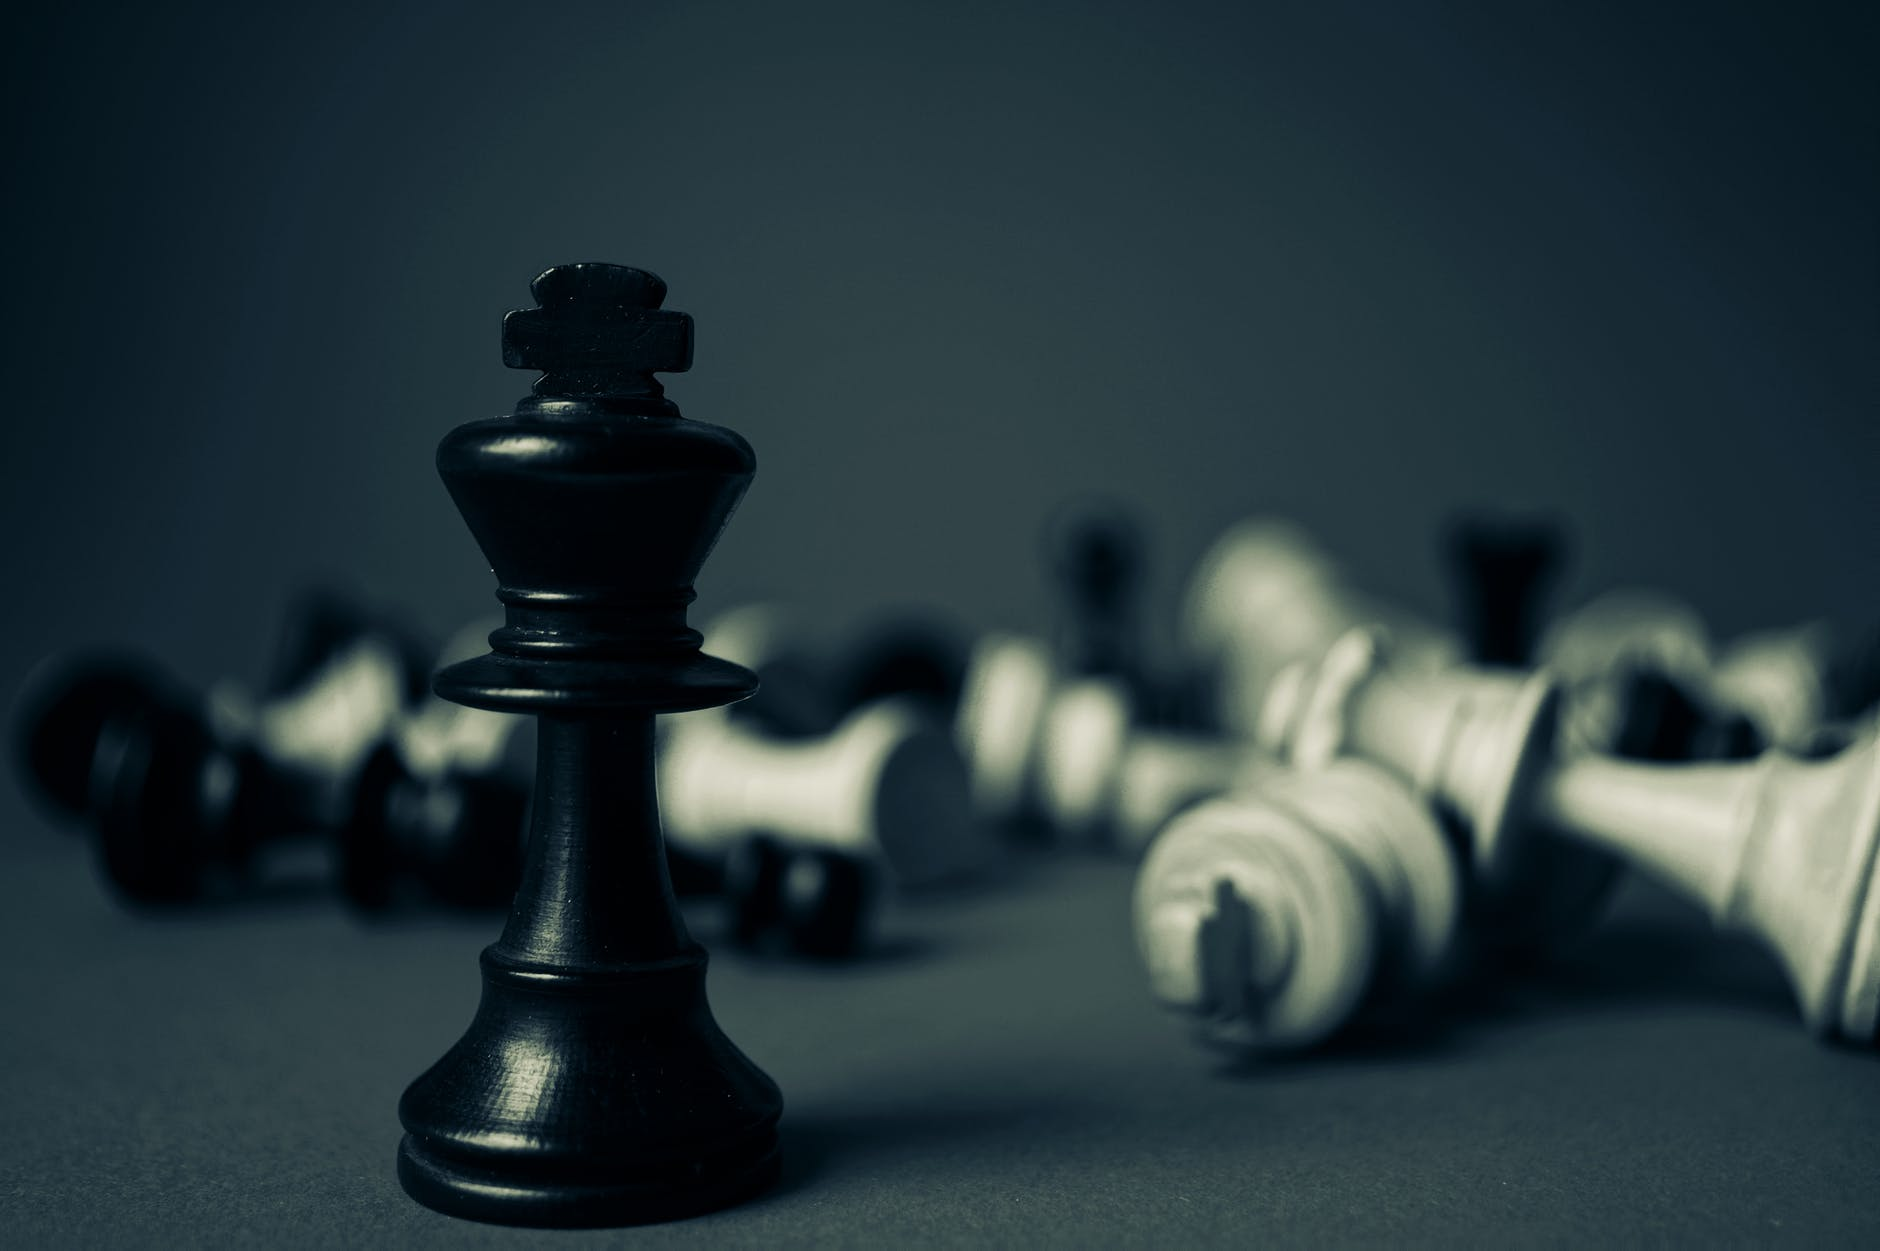 Chess men: The black king stands upright above other chess men on their side, including the white king.